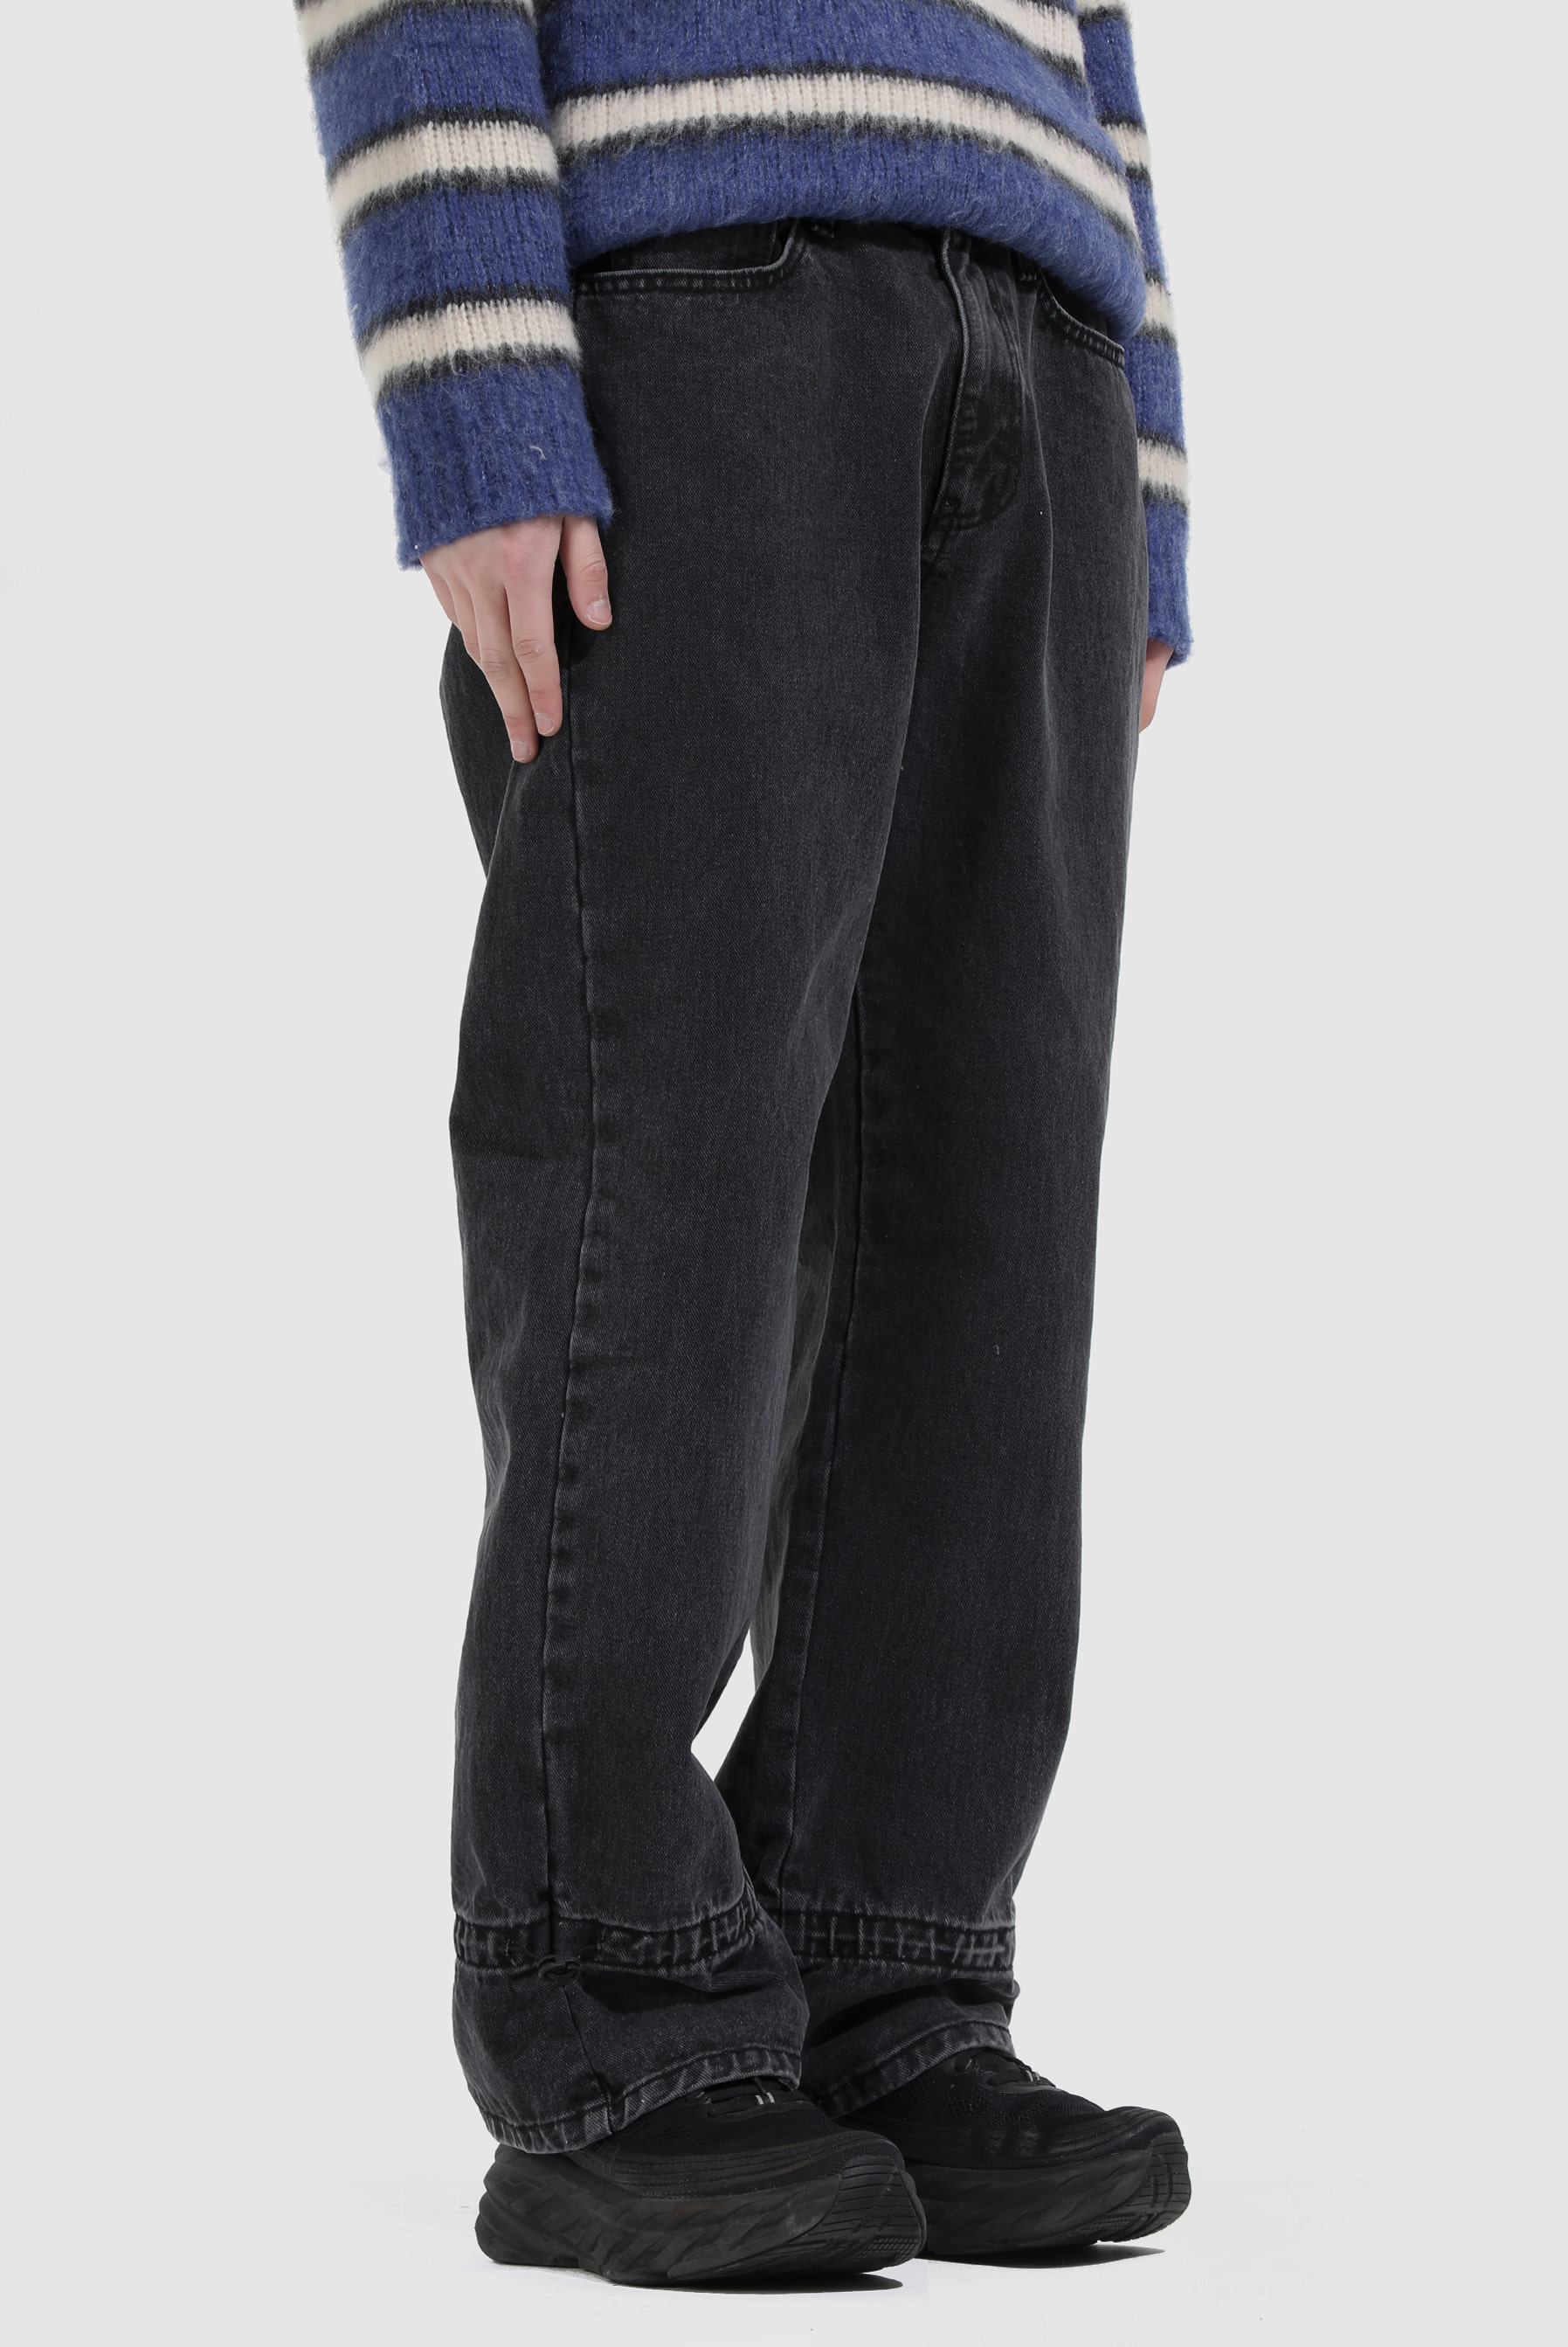 Stopper_String Black Jean